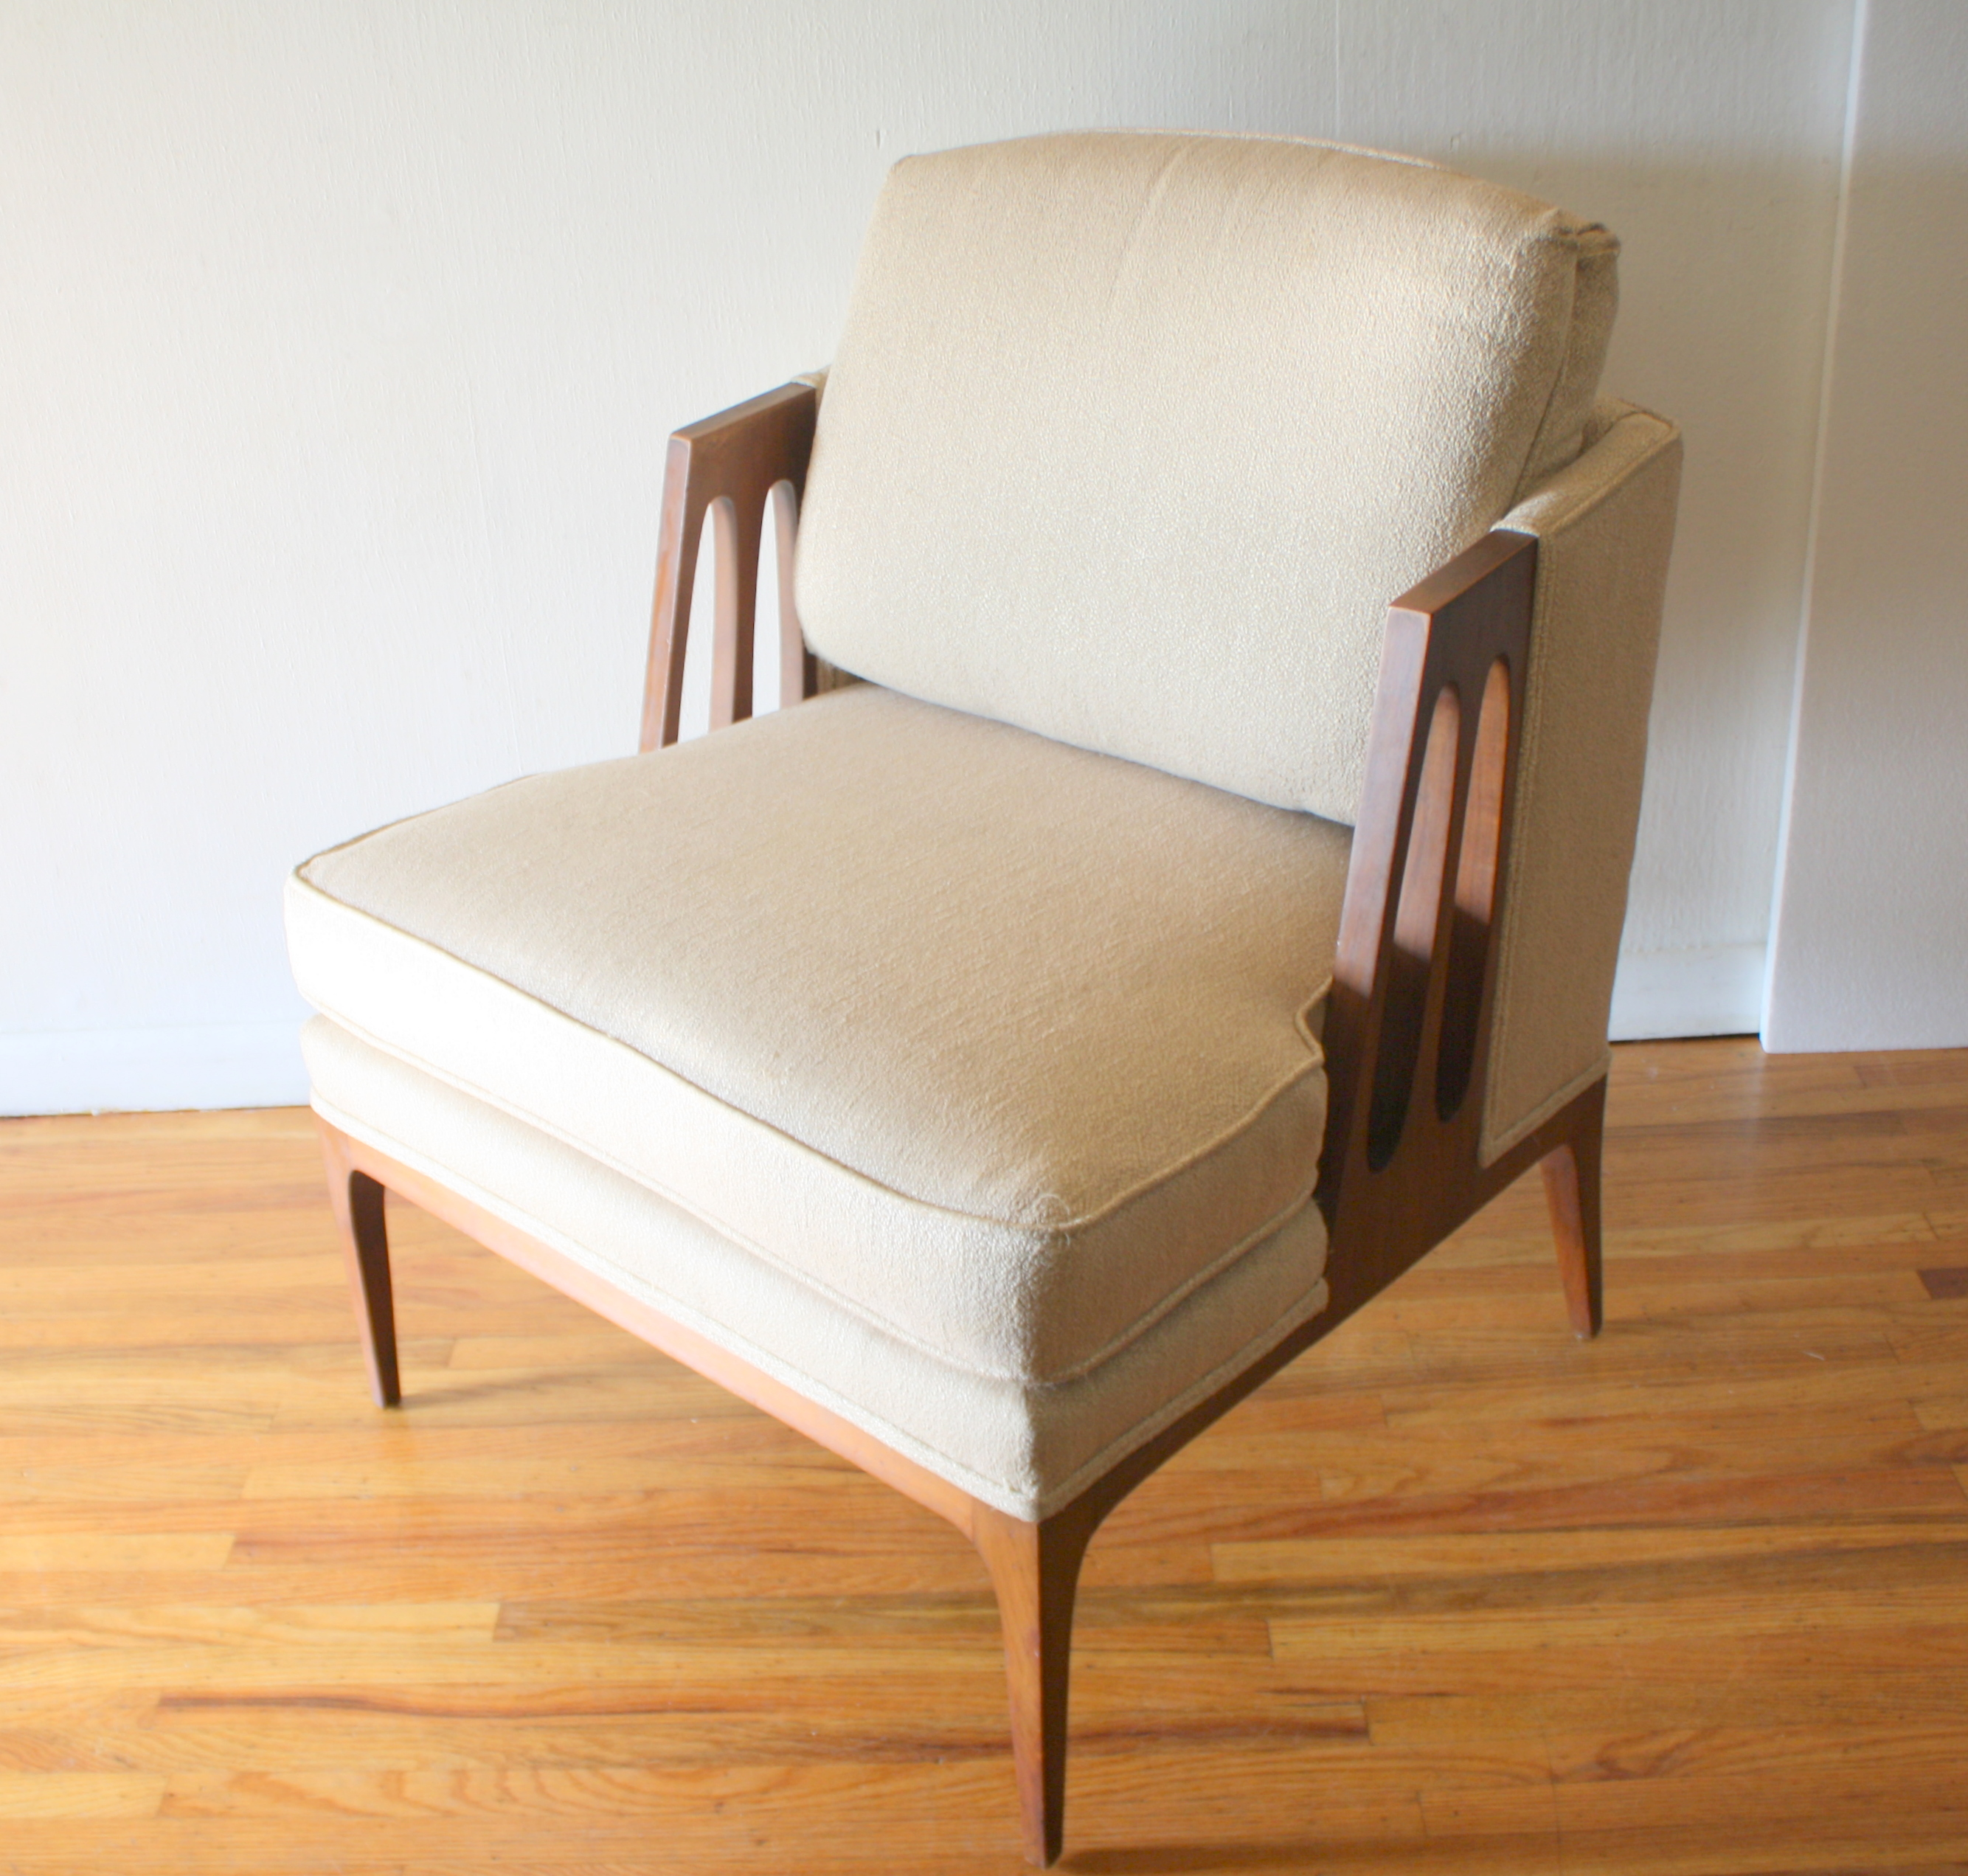 mcm arm chair with sculpted sides 1.JPG